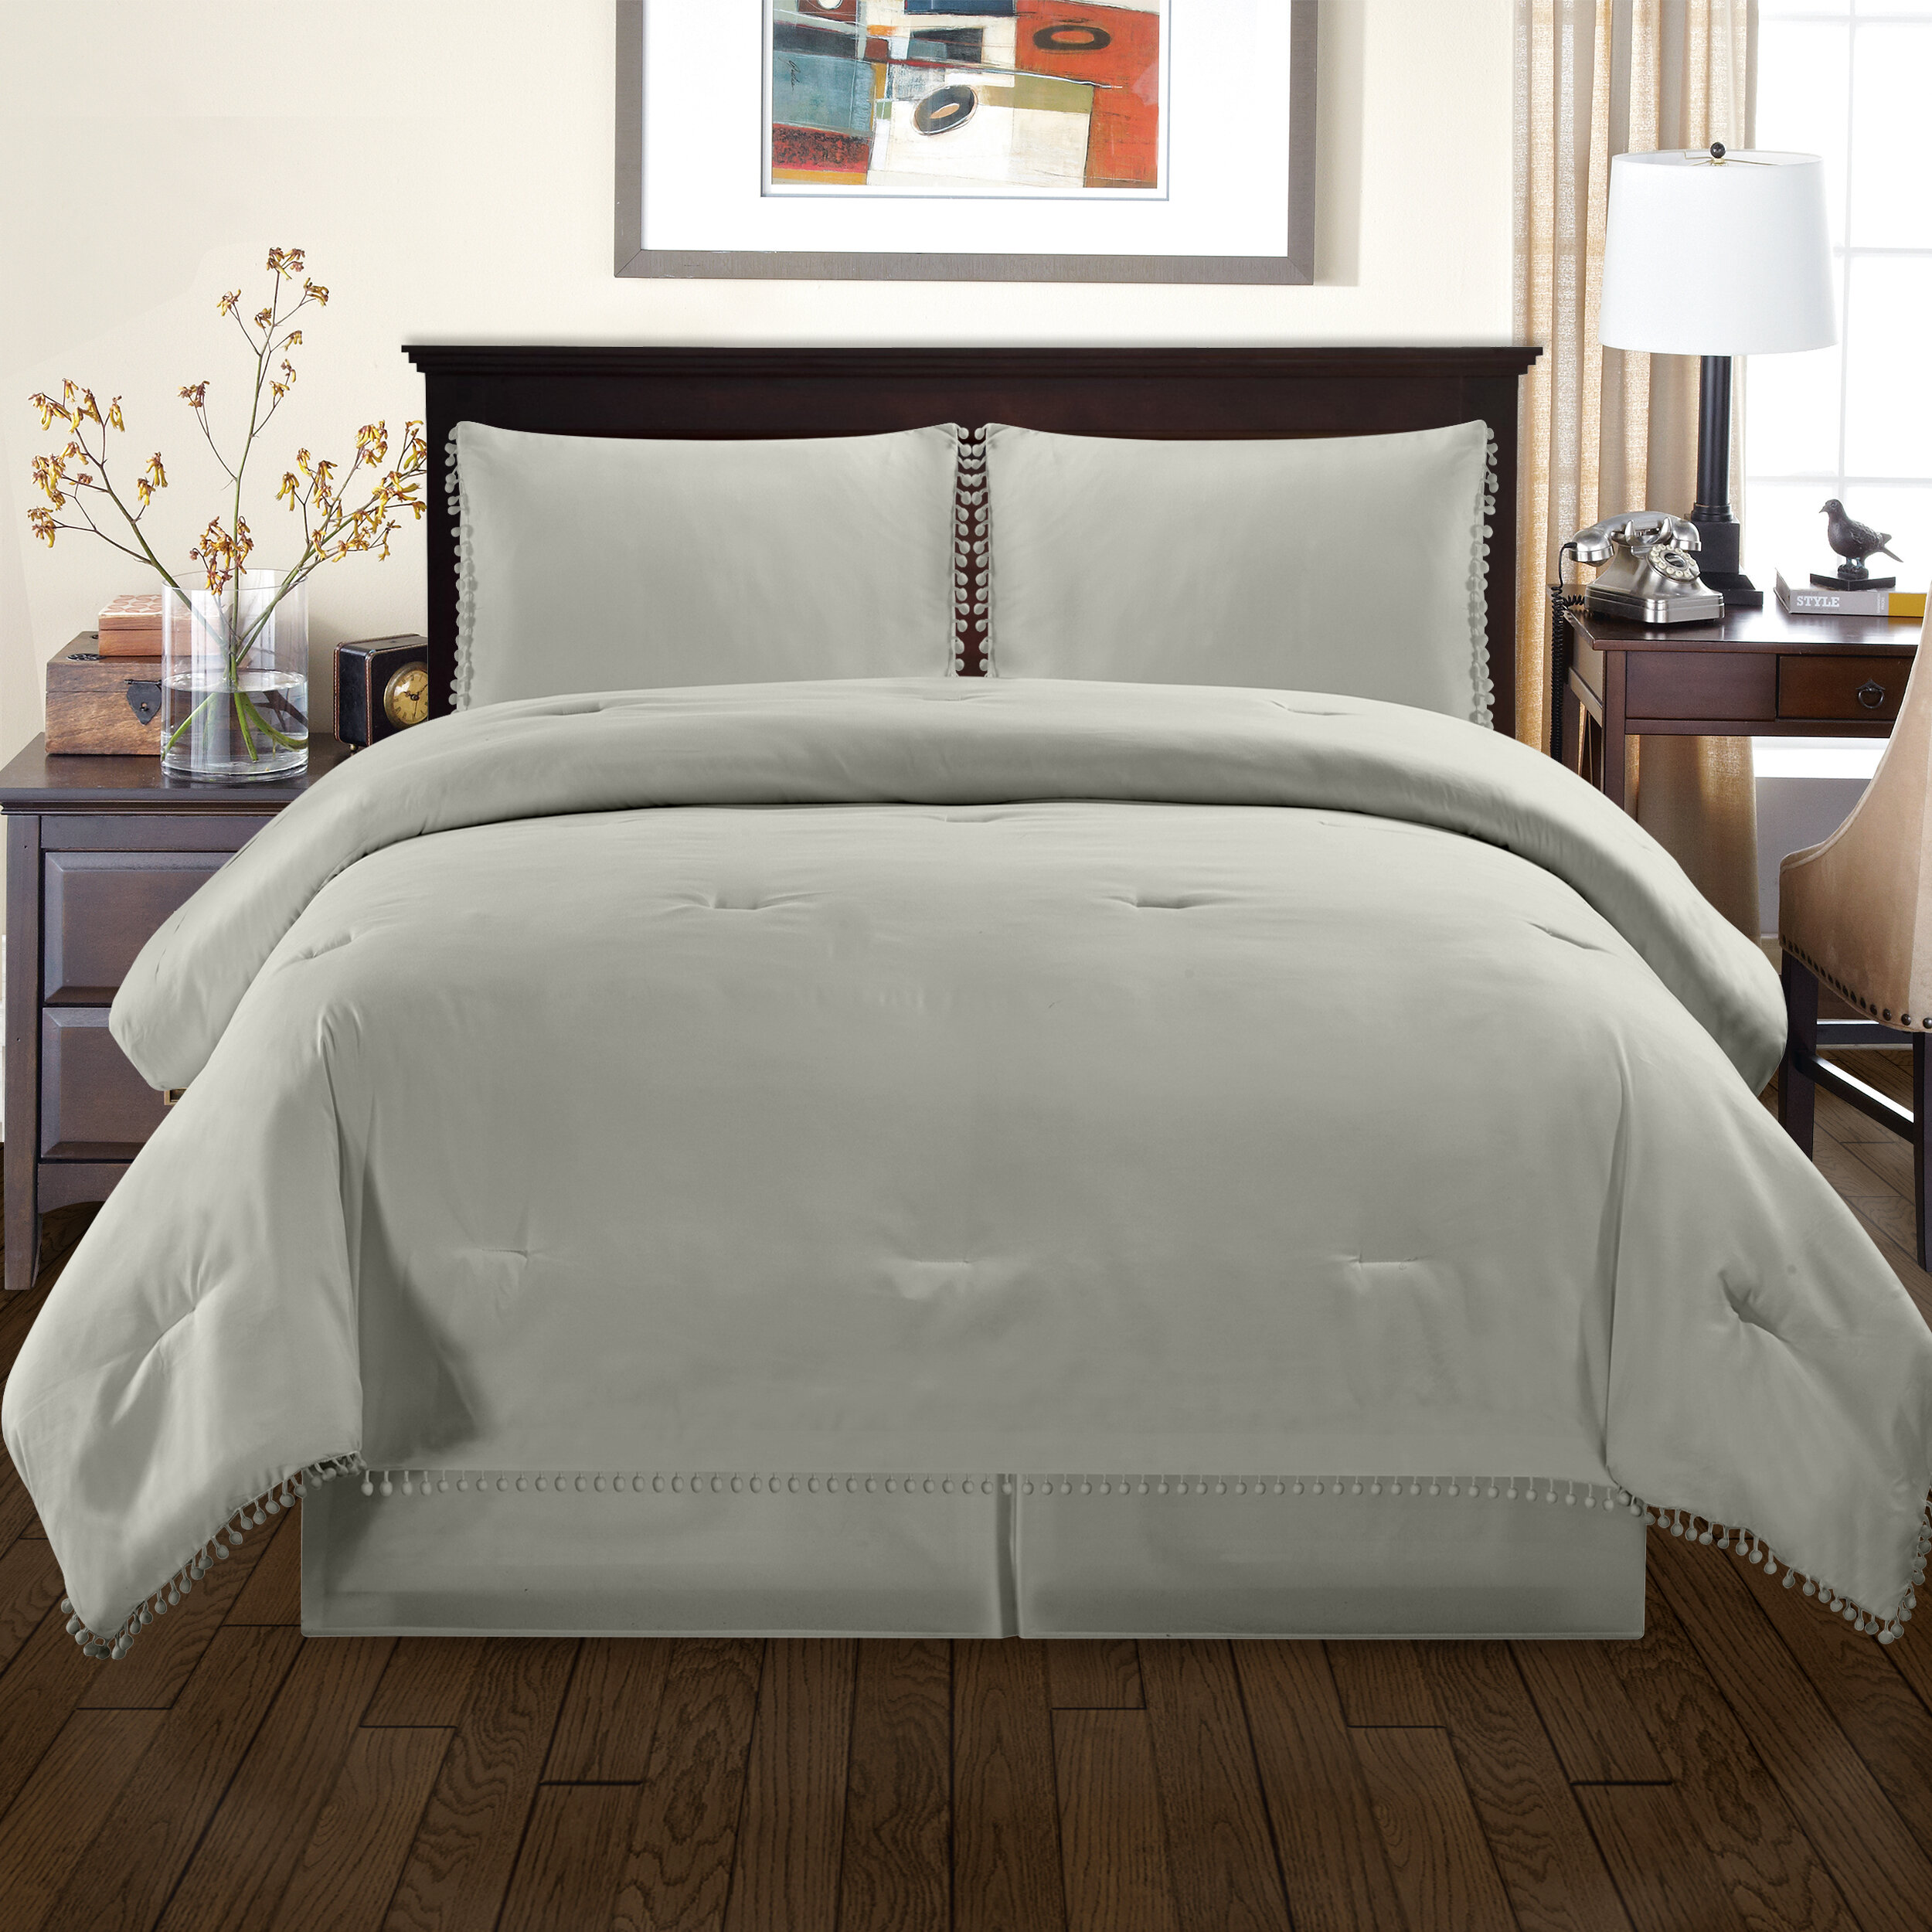 wayfair classics hodgson comforter reversible home pintuck pdx down co twillery bath alternative all reviews the bed season